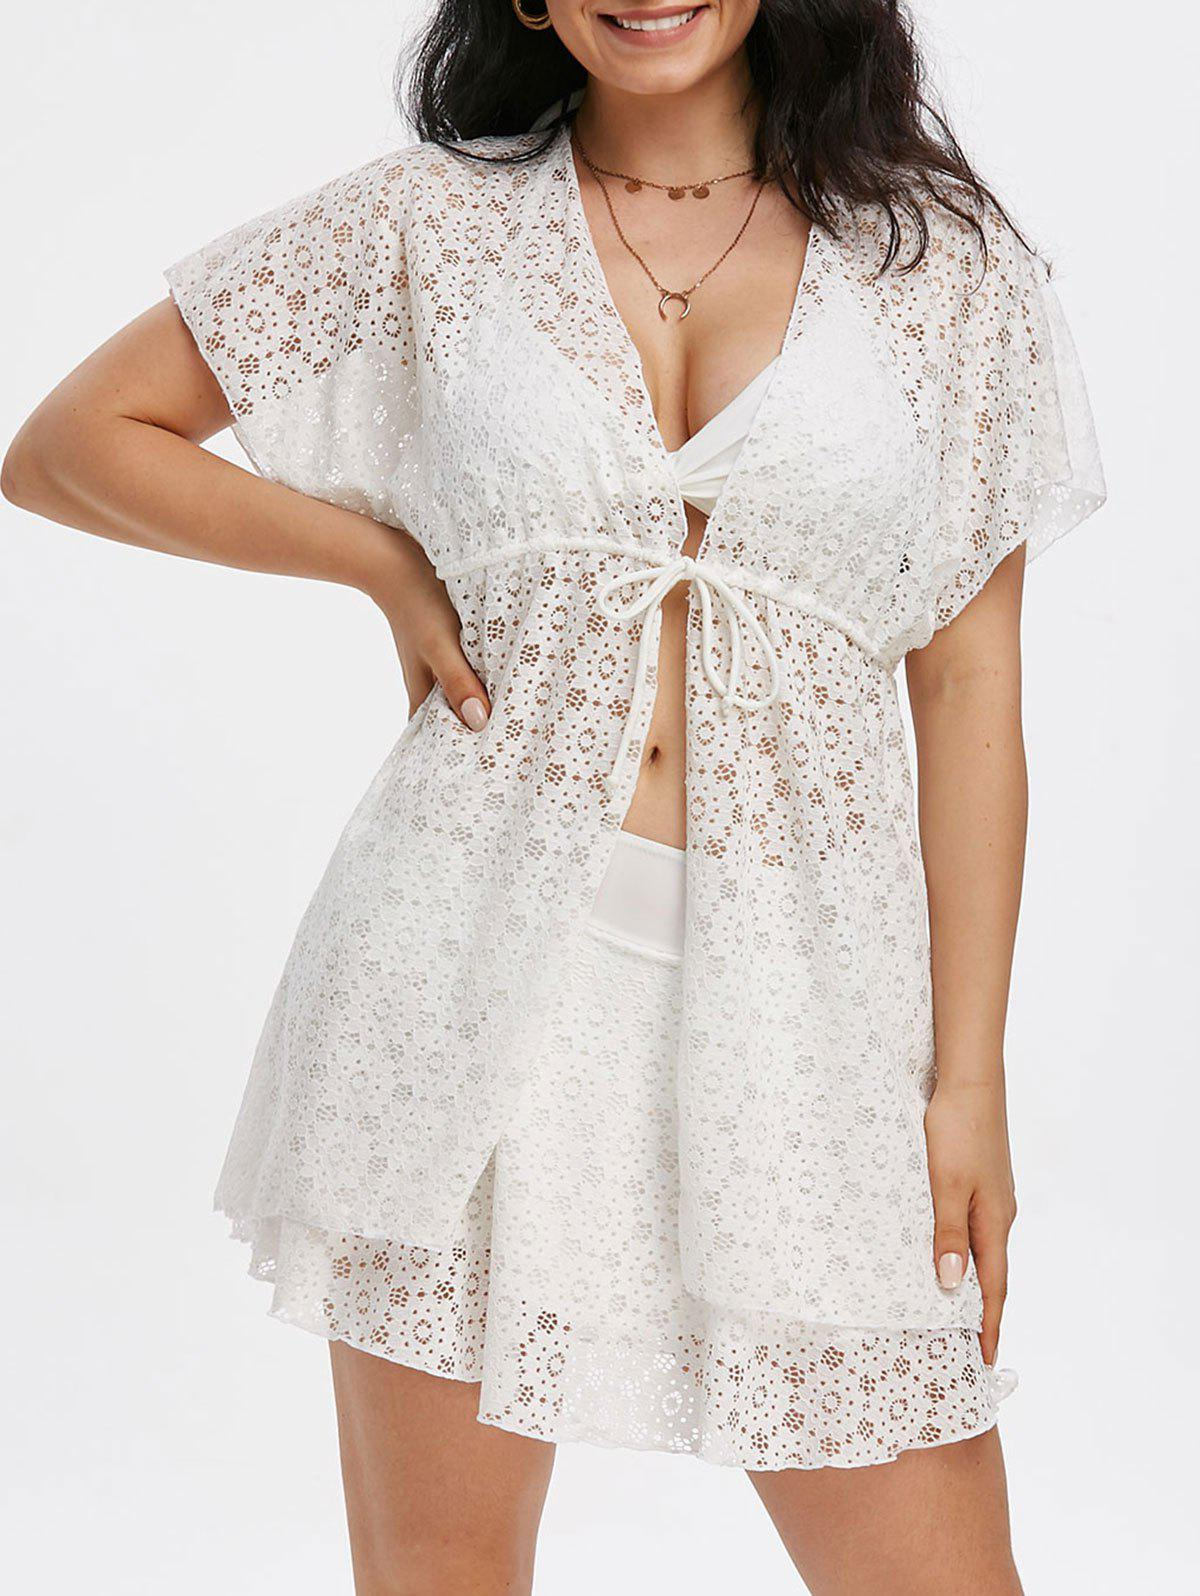 Discount 3 Piece Lace Swimsuit Bra Skirt and Cover Up